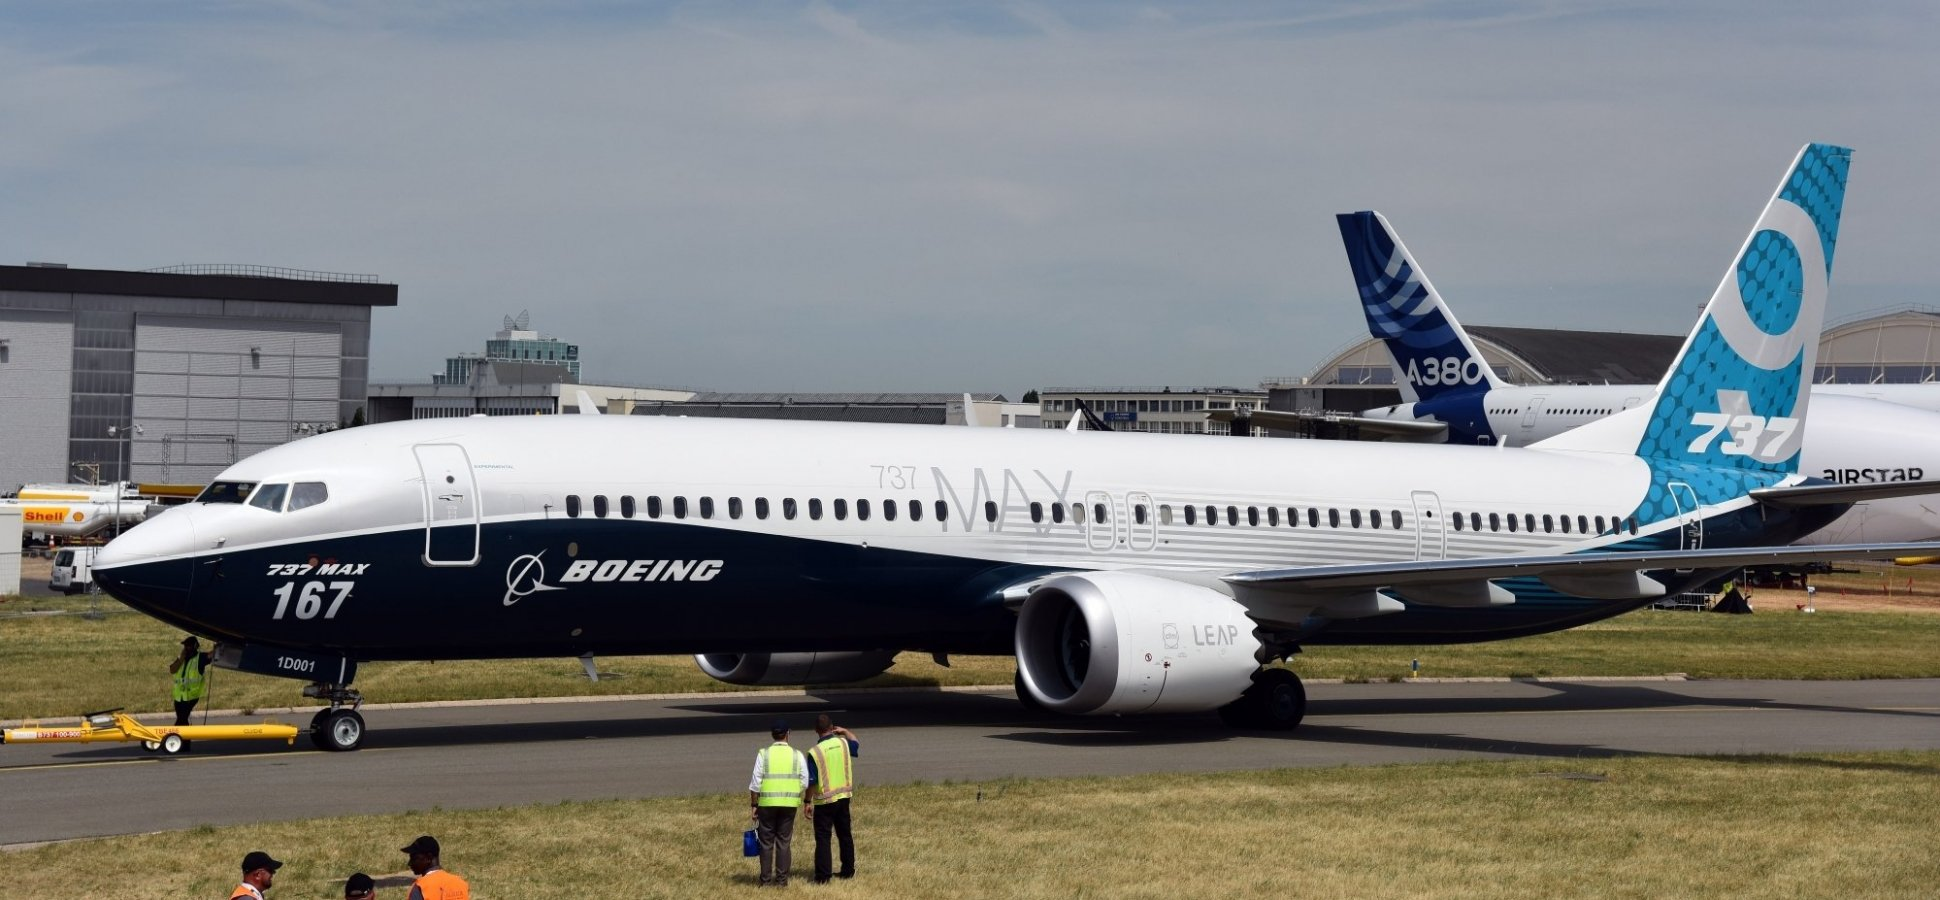 Boeing's CEO Just Made a Truly Stunning Announcement About the Company's Grounded 737 MAX Aircraft